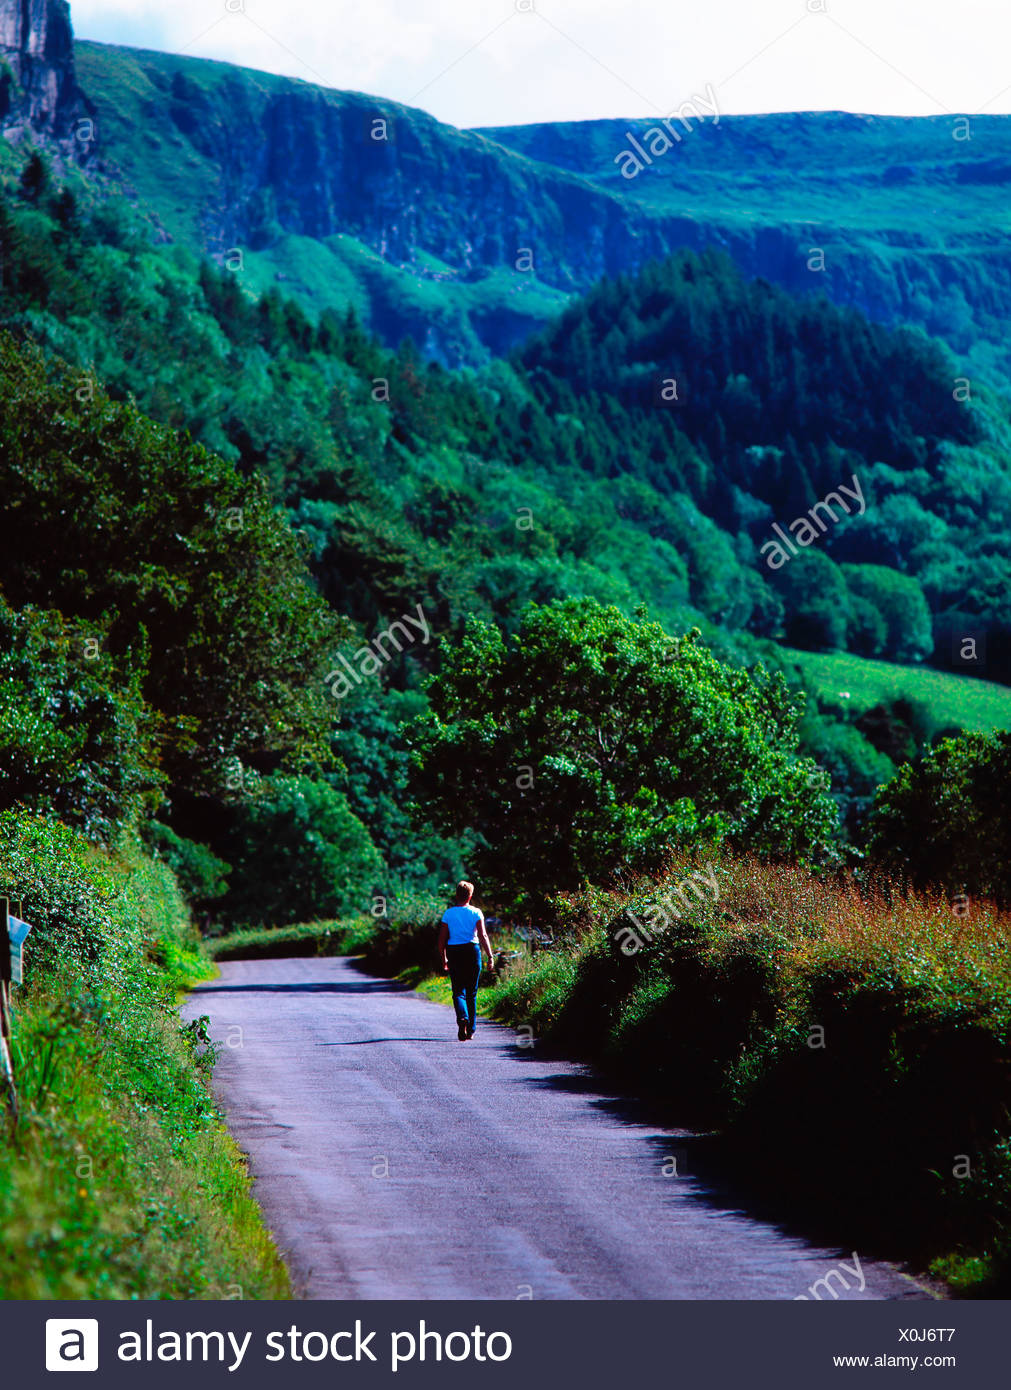 Rear View Of A Person Walking On Road Stock Photo